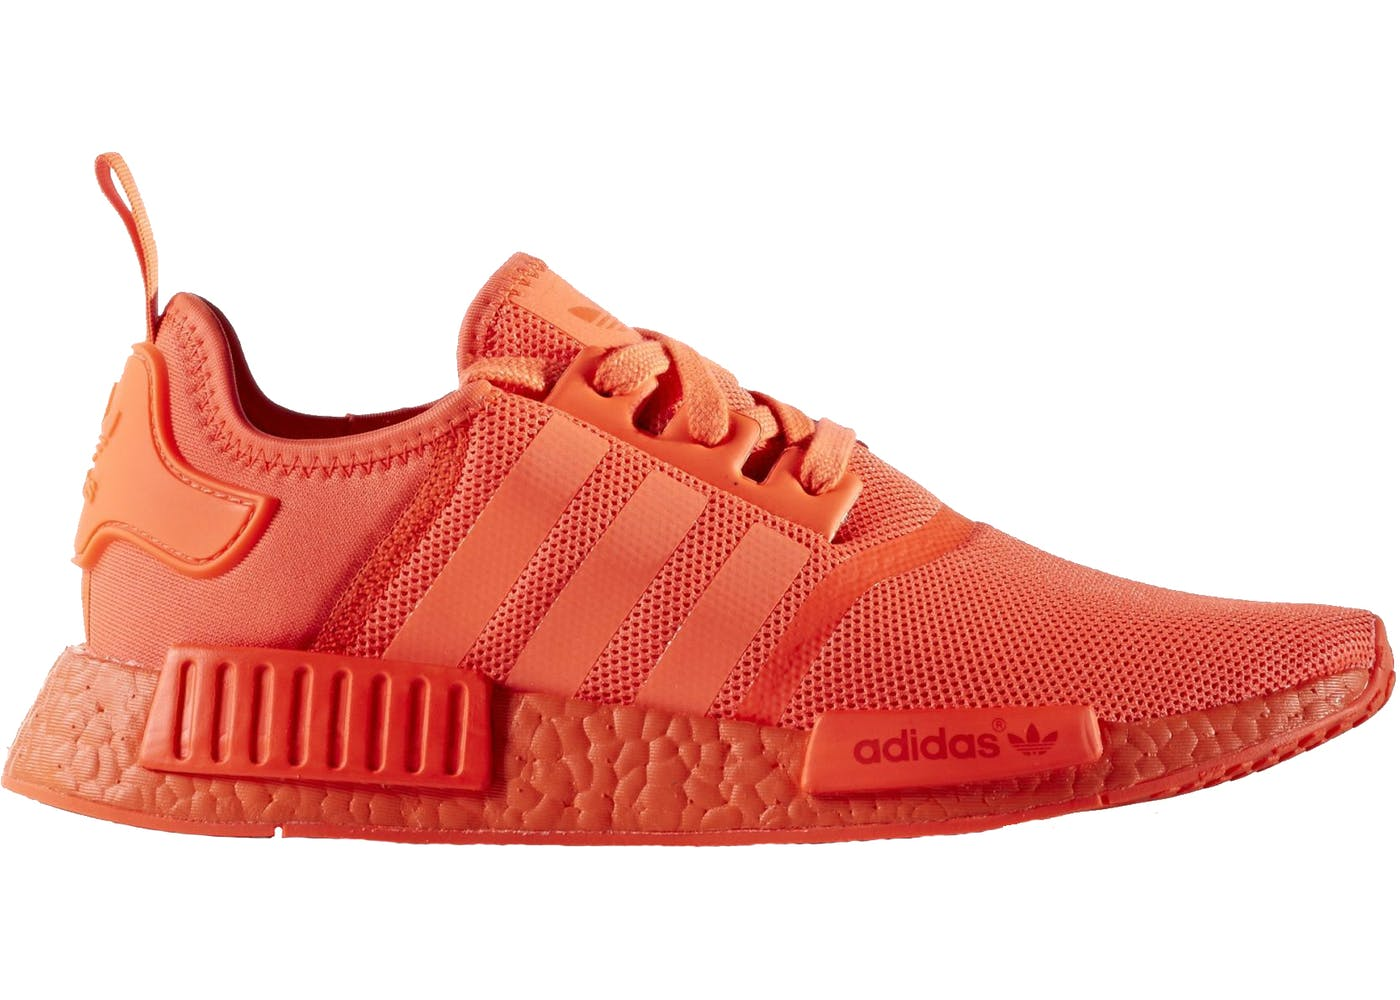 b5c30470121fa adidas Originals NMD Triple Red Solar Red